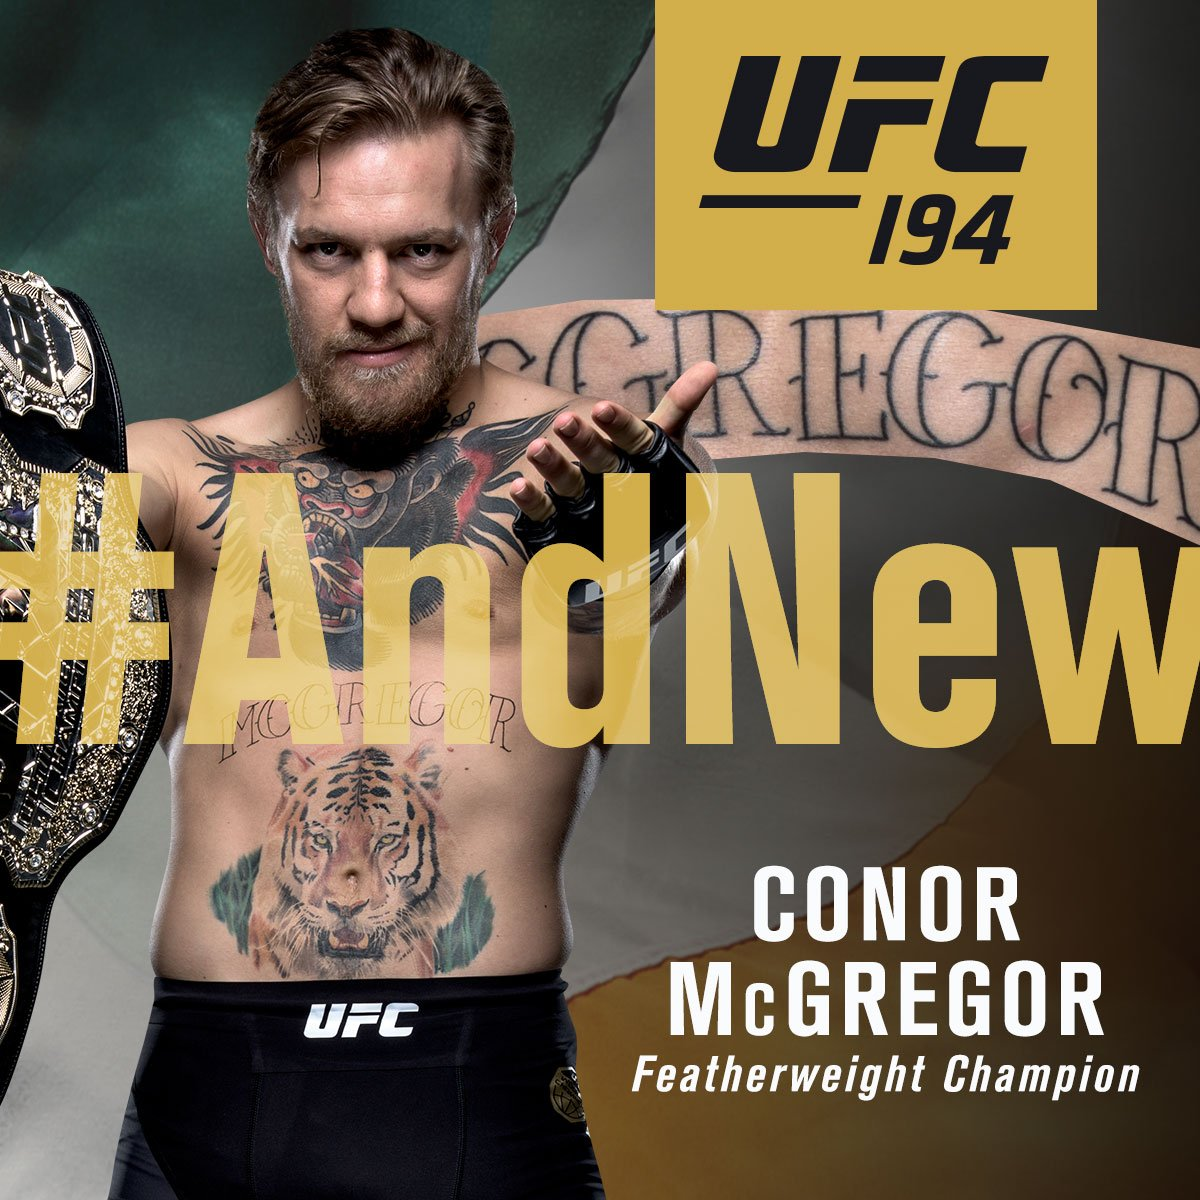 #AndNew UFC featherweight champion of the world @TheNotoriousMMA #UFC194 https://t.co/lKdVtMgsw4